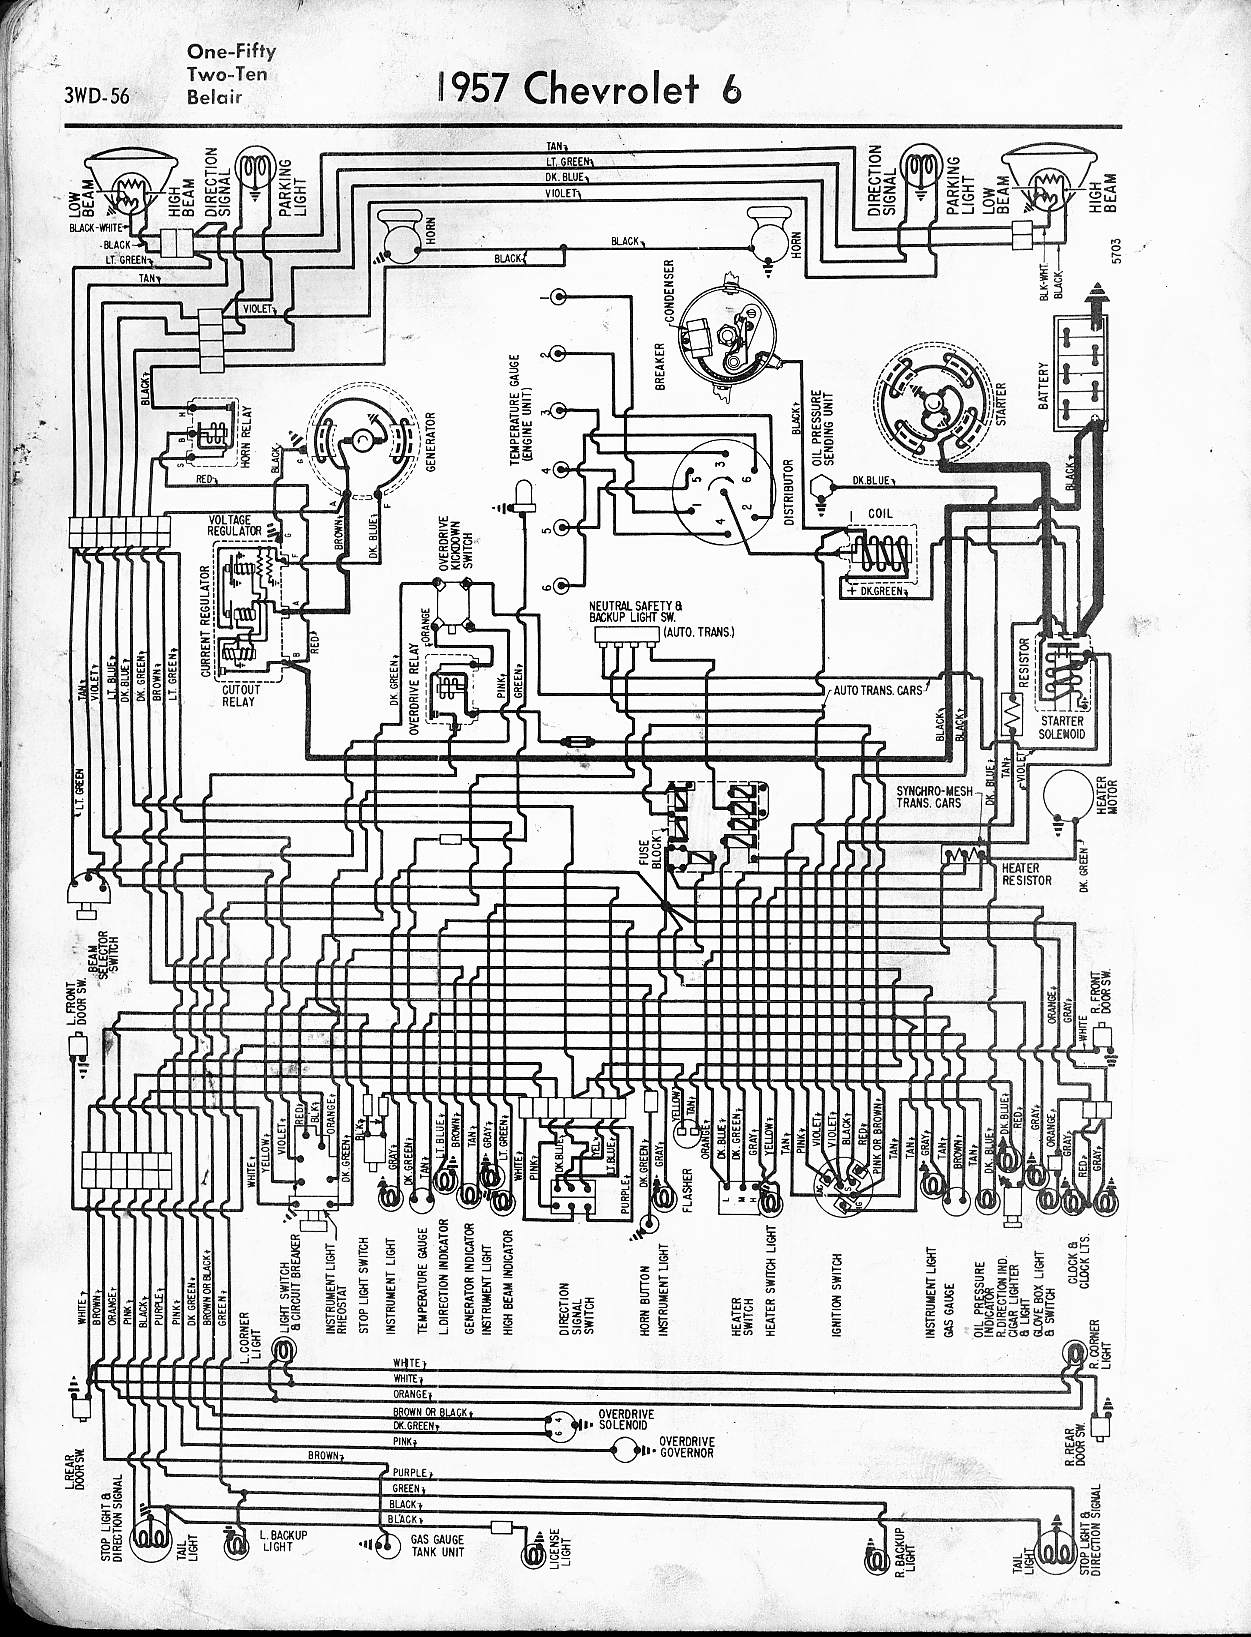 1957 bel air wiring diagram automotive wiring diagram library u2022 rh seigokanengland co uk